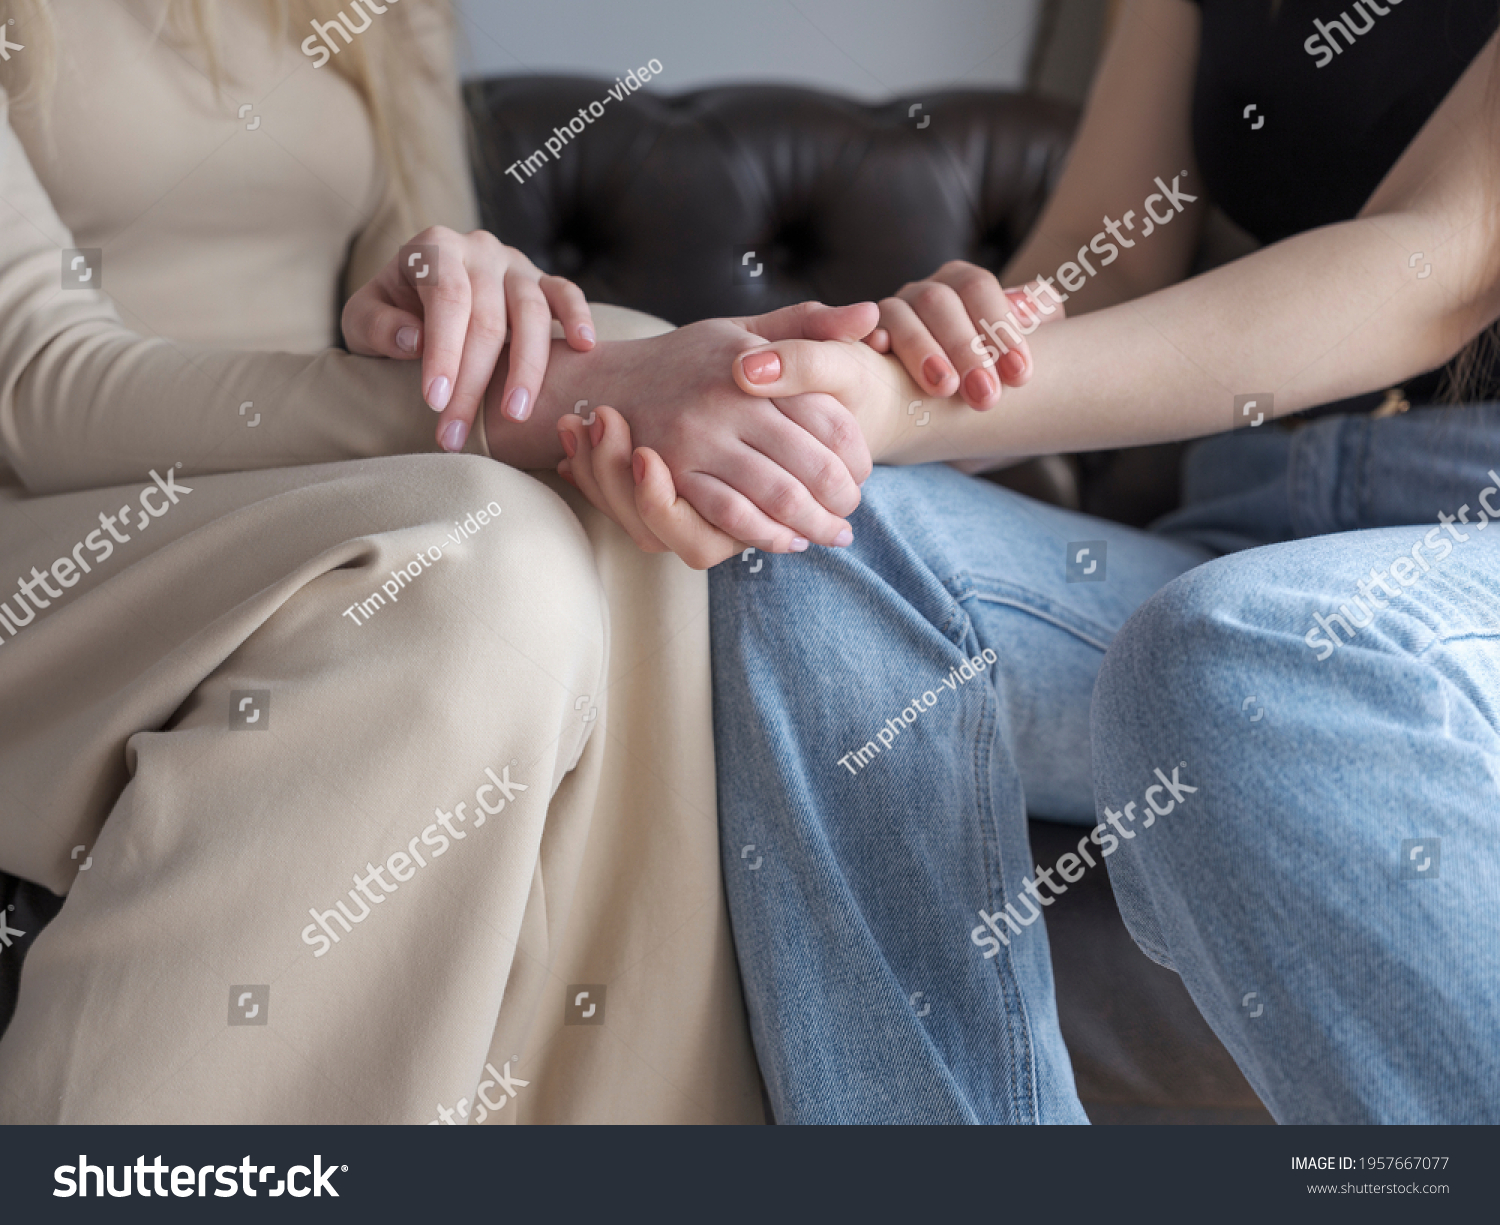 stock-photo-two-women-are-sitting-on-the